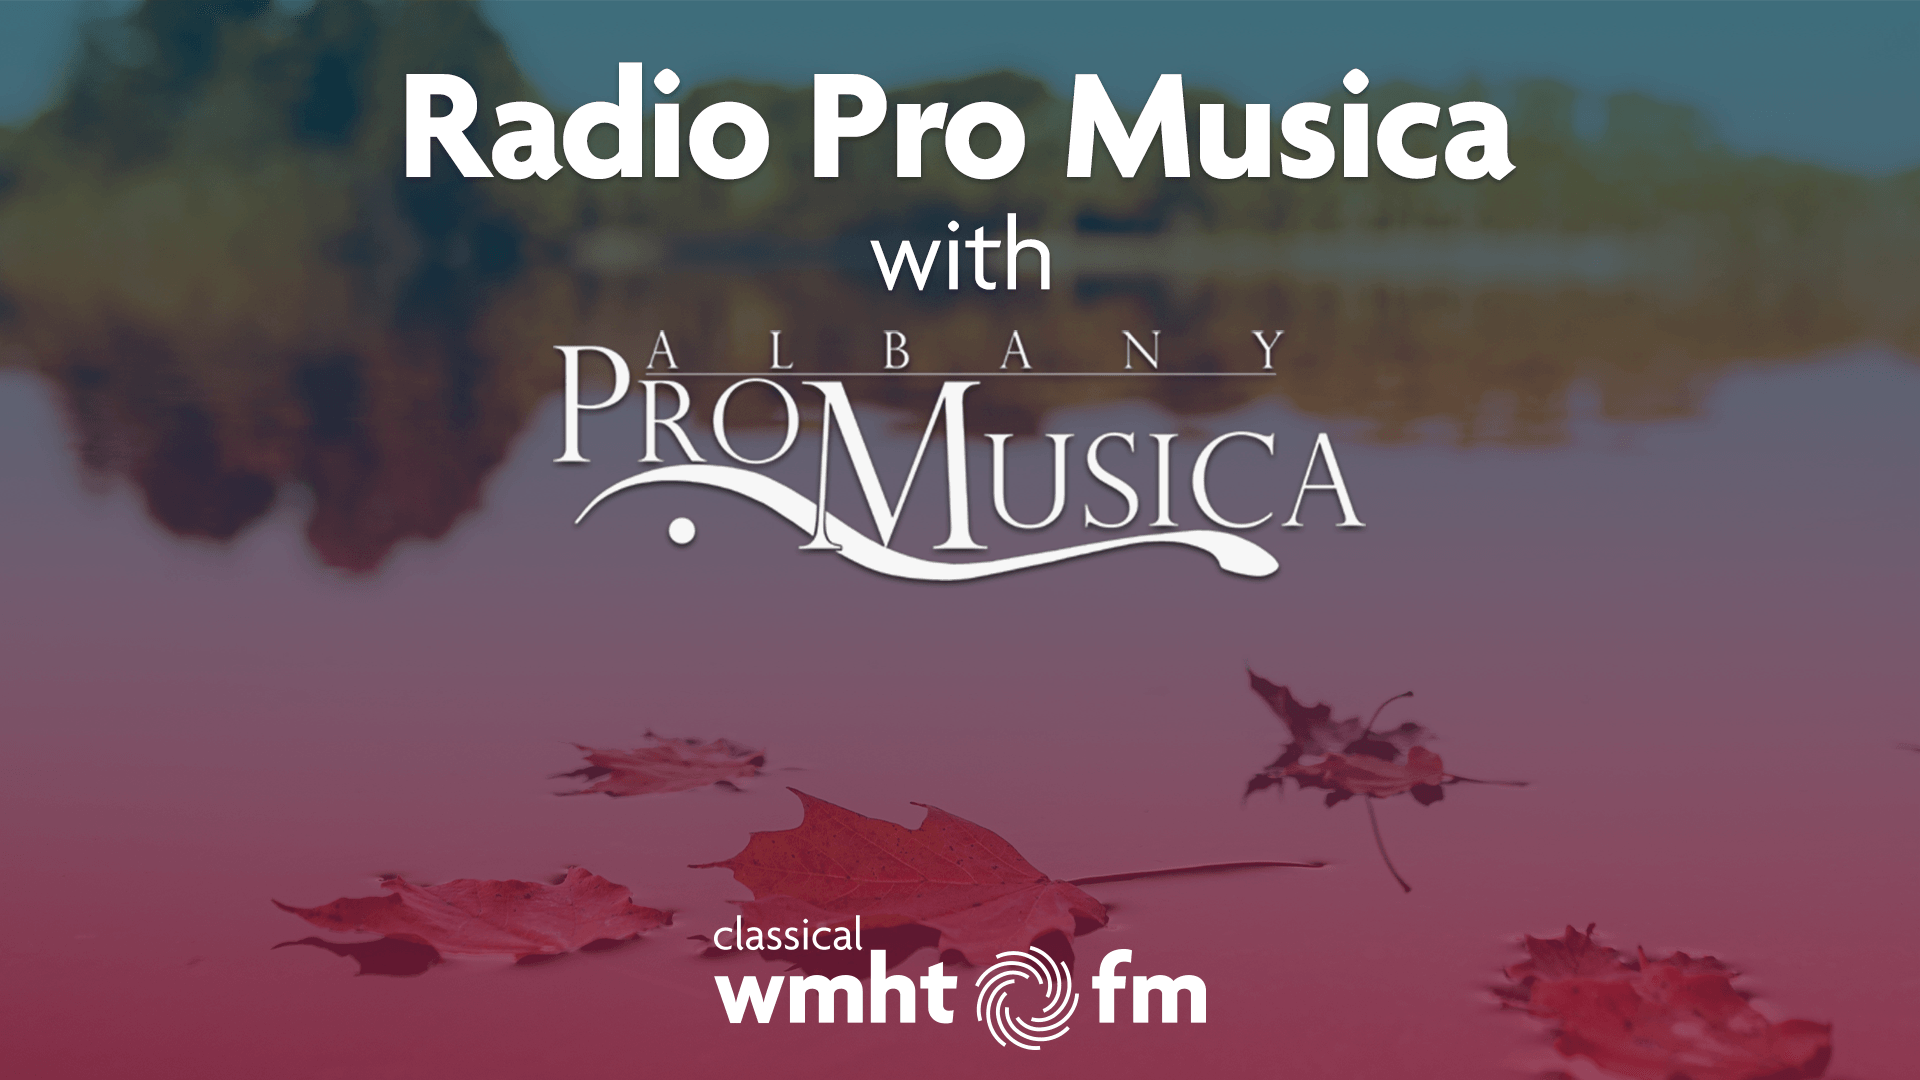 Radio Pro Musica Title Graphic featuring sans-serif type for the title and the Albany Pro Musica logo with serif and sans-serif type.